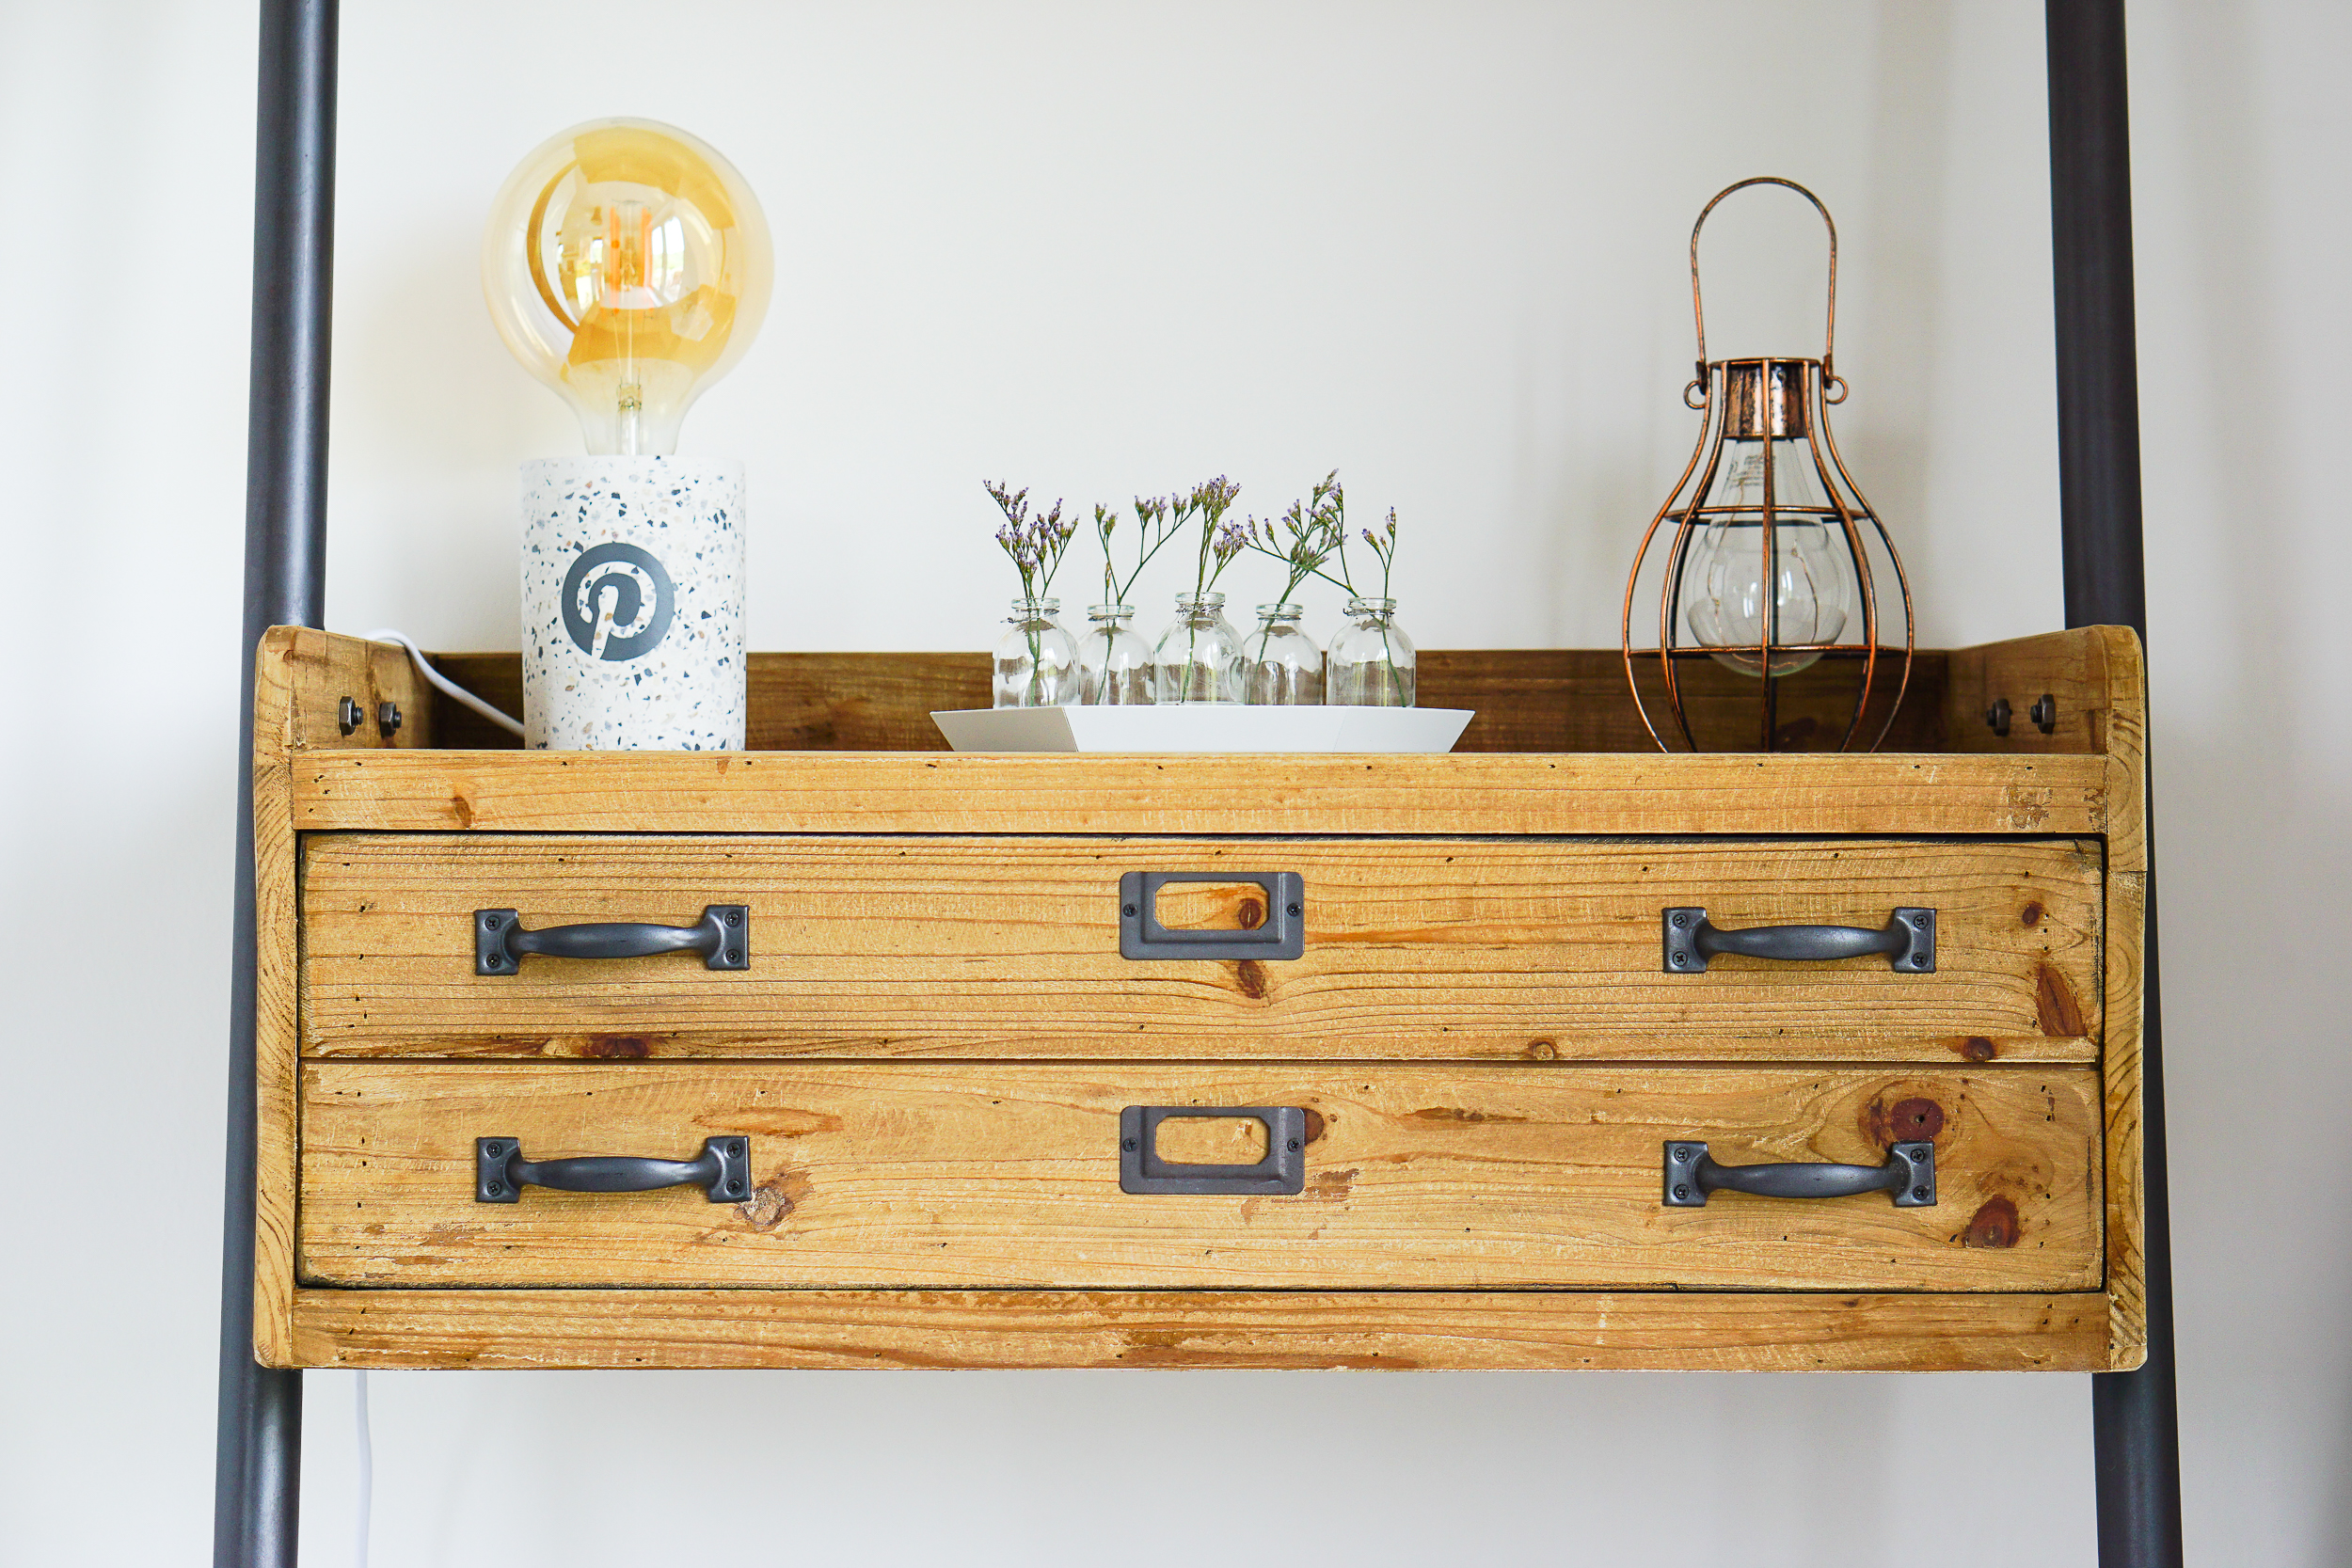 Incorporating the charm of vintage writing bureaus with the tactility of industrial shelving systems, this unique designer shelf system exudes a feeling of Scandic sophistication.